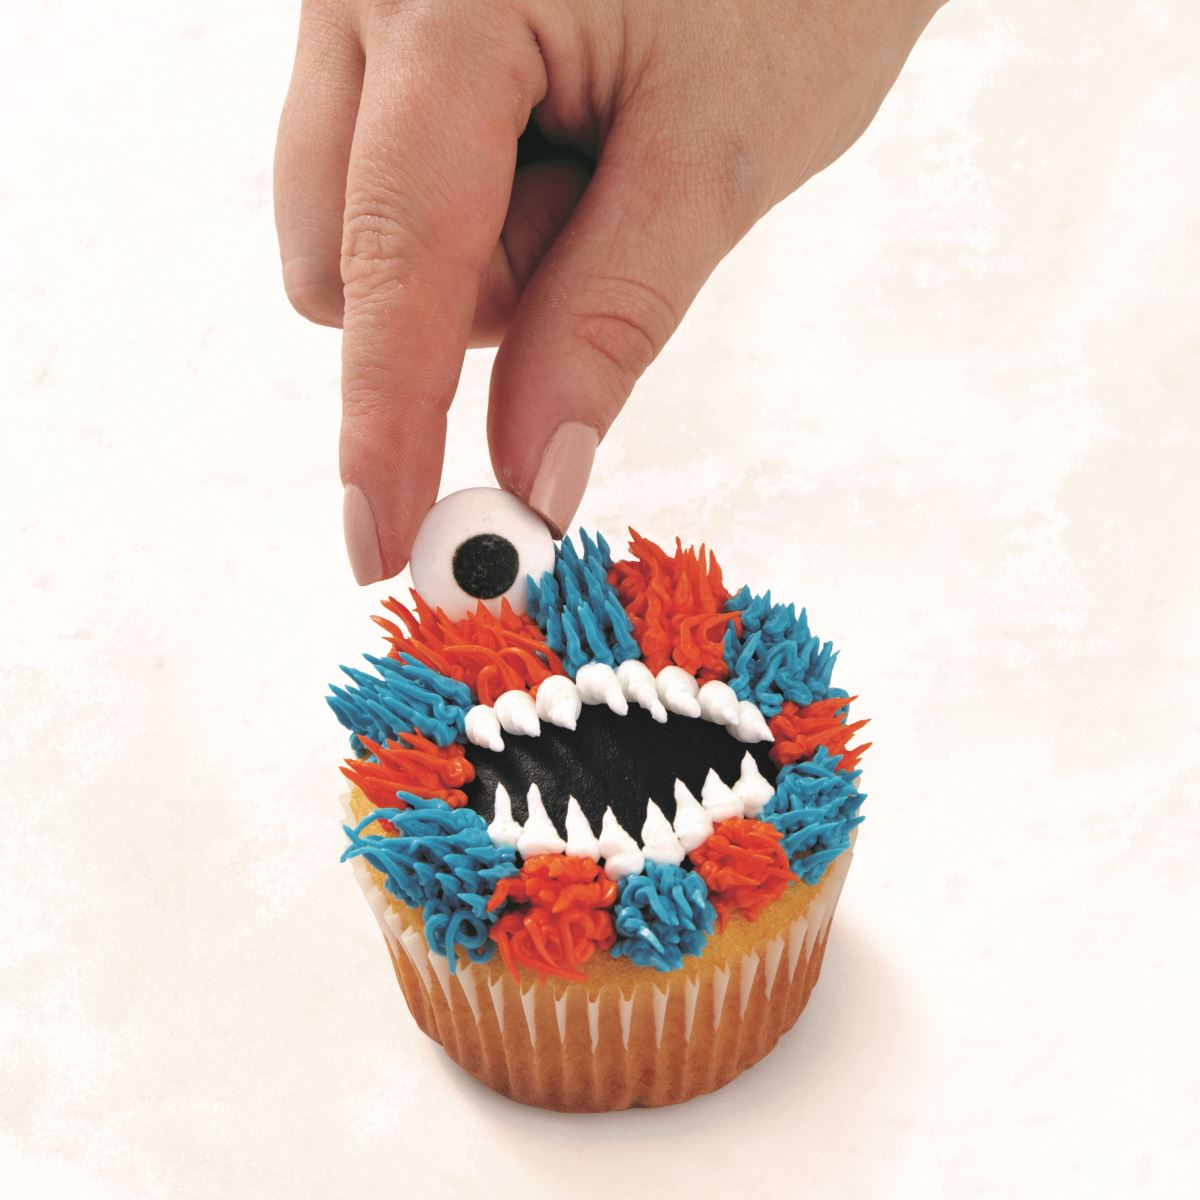 BLUE AND ORANGE MONSTER CUPCAKE step 7